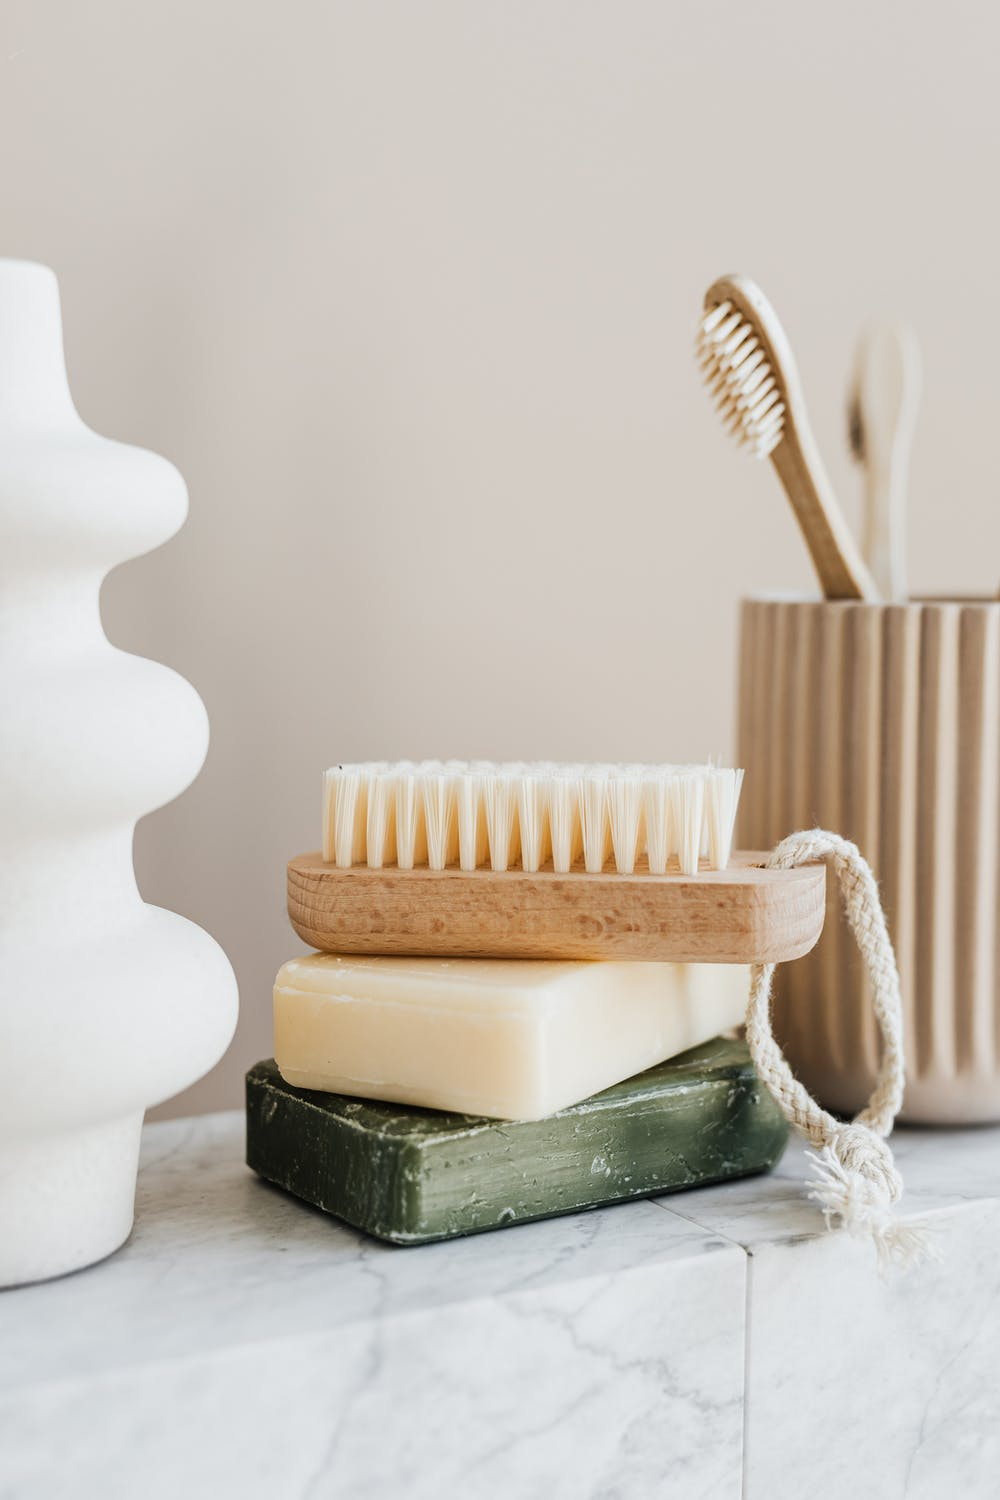 Top Tips for Making The Switch to More Natural Products by Cleanhome Sussex